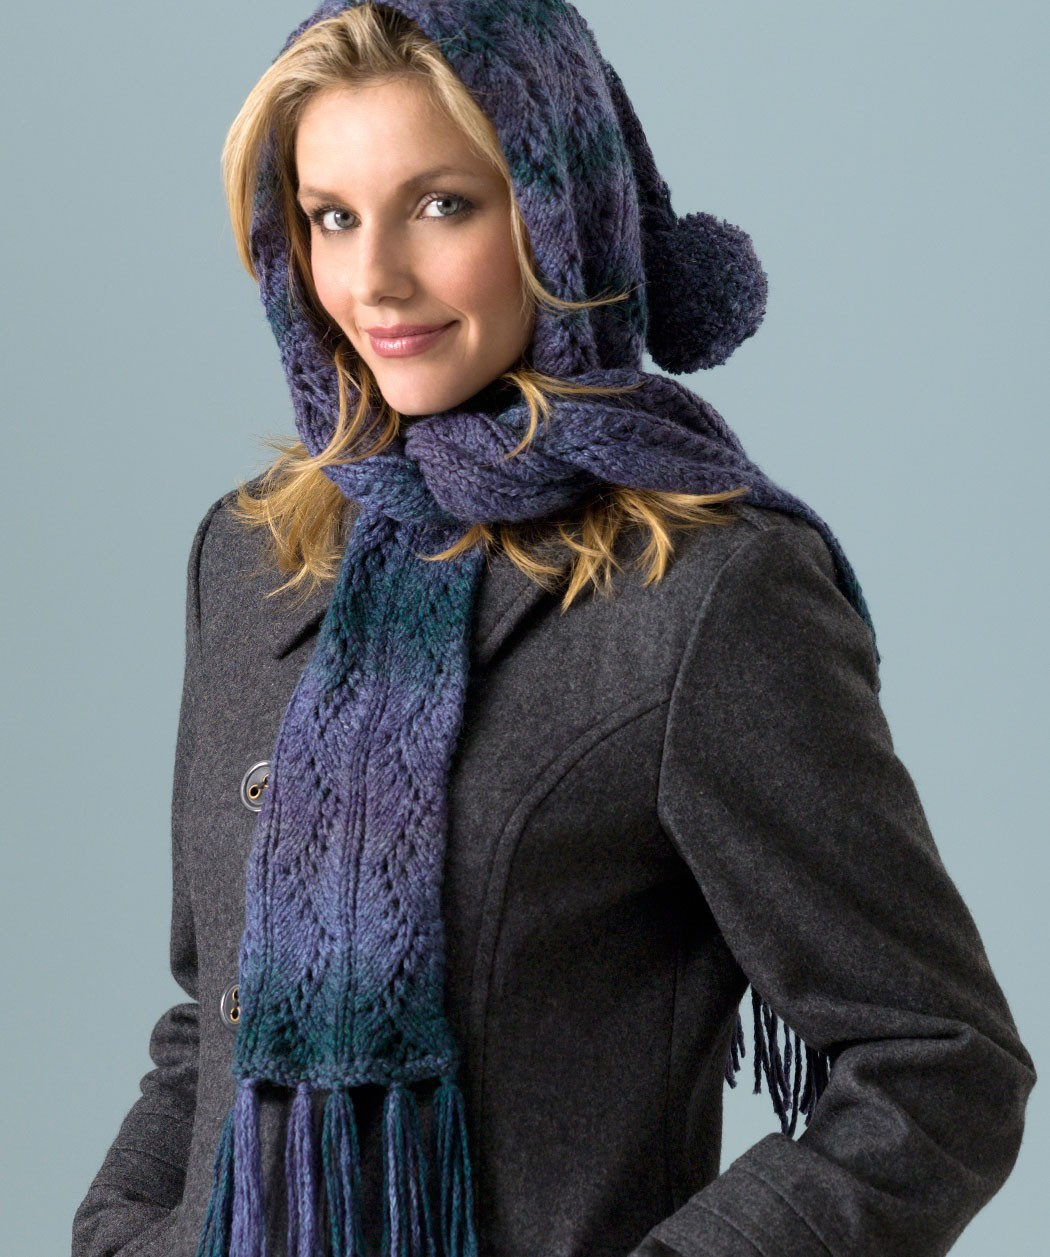 Hooded Lace Scarf Knitting Pattern Tutorial